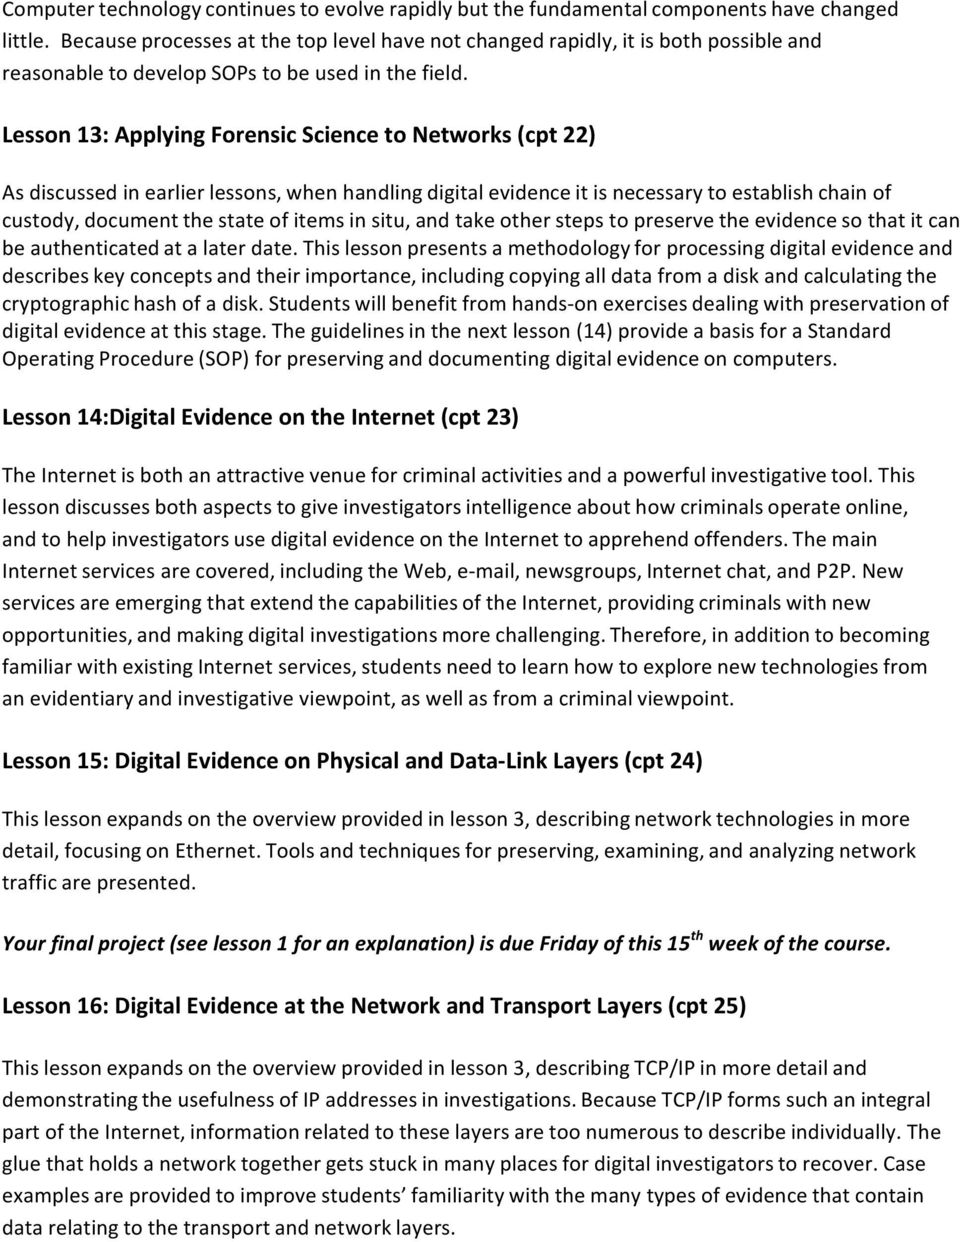 Lesson 13: Applying Forensic Science to Networks (cpt 22) As discussed in earlier lessons, when handling digital evidence it is necessary to establish chain of custody, document the state of items in